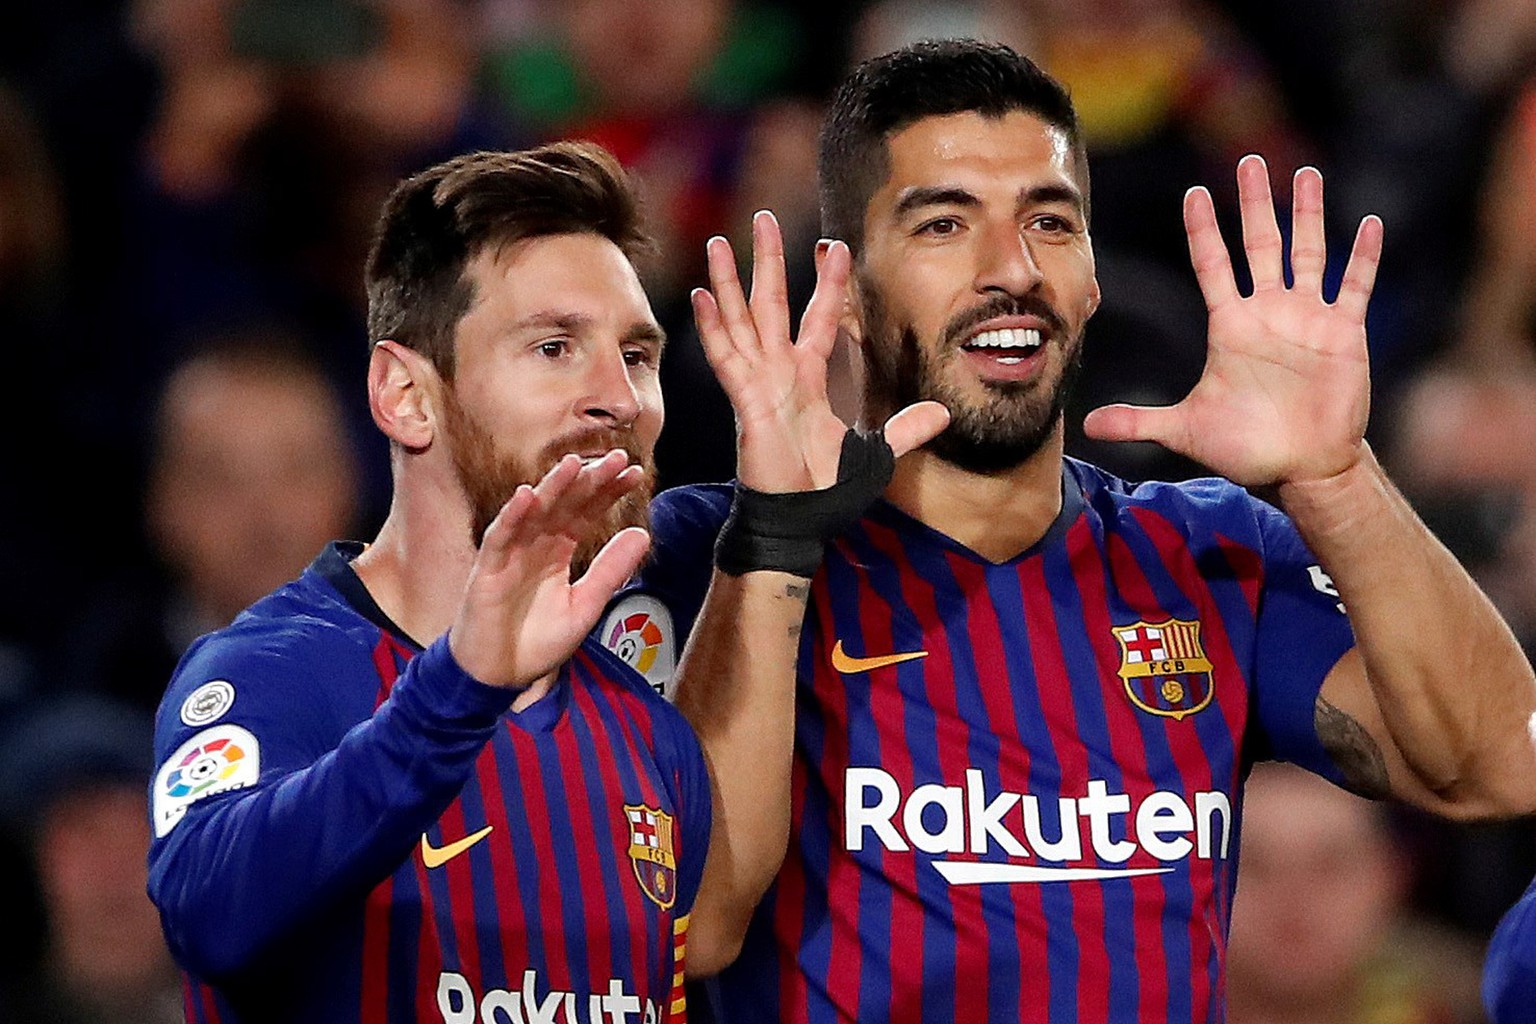 "epa07280678 FC Barcelona's Luis Suarez (R) celebrates with teammate Lionel Messi (L) after scoring the 3-0 lead during the Spanish La Liga Primera Division soccer match between FC Barcelona and SD Eibar at Camp Nou stadium in Barcelona, ​​Spain, January 1<div class=""e3lan e3lan-in-post1""><script async src=""//pagead2.googlesyndication.com/pagead/js/adsbygoogle.js""></script>